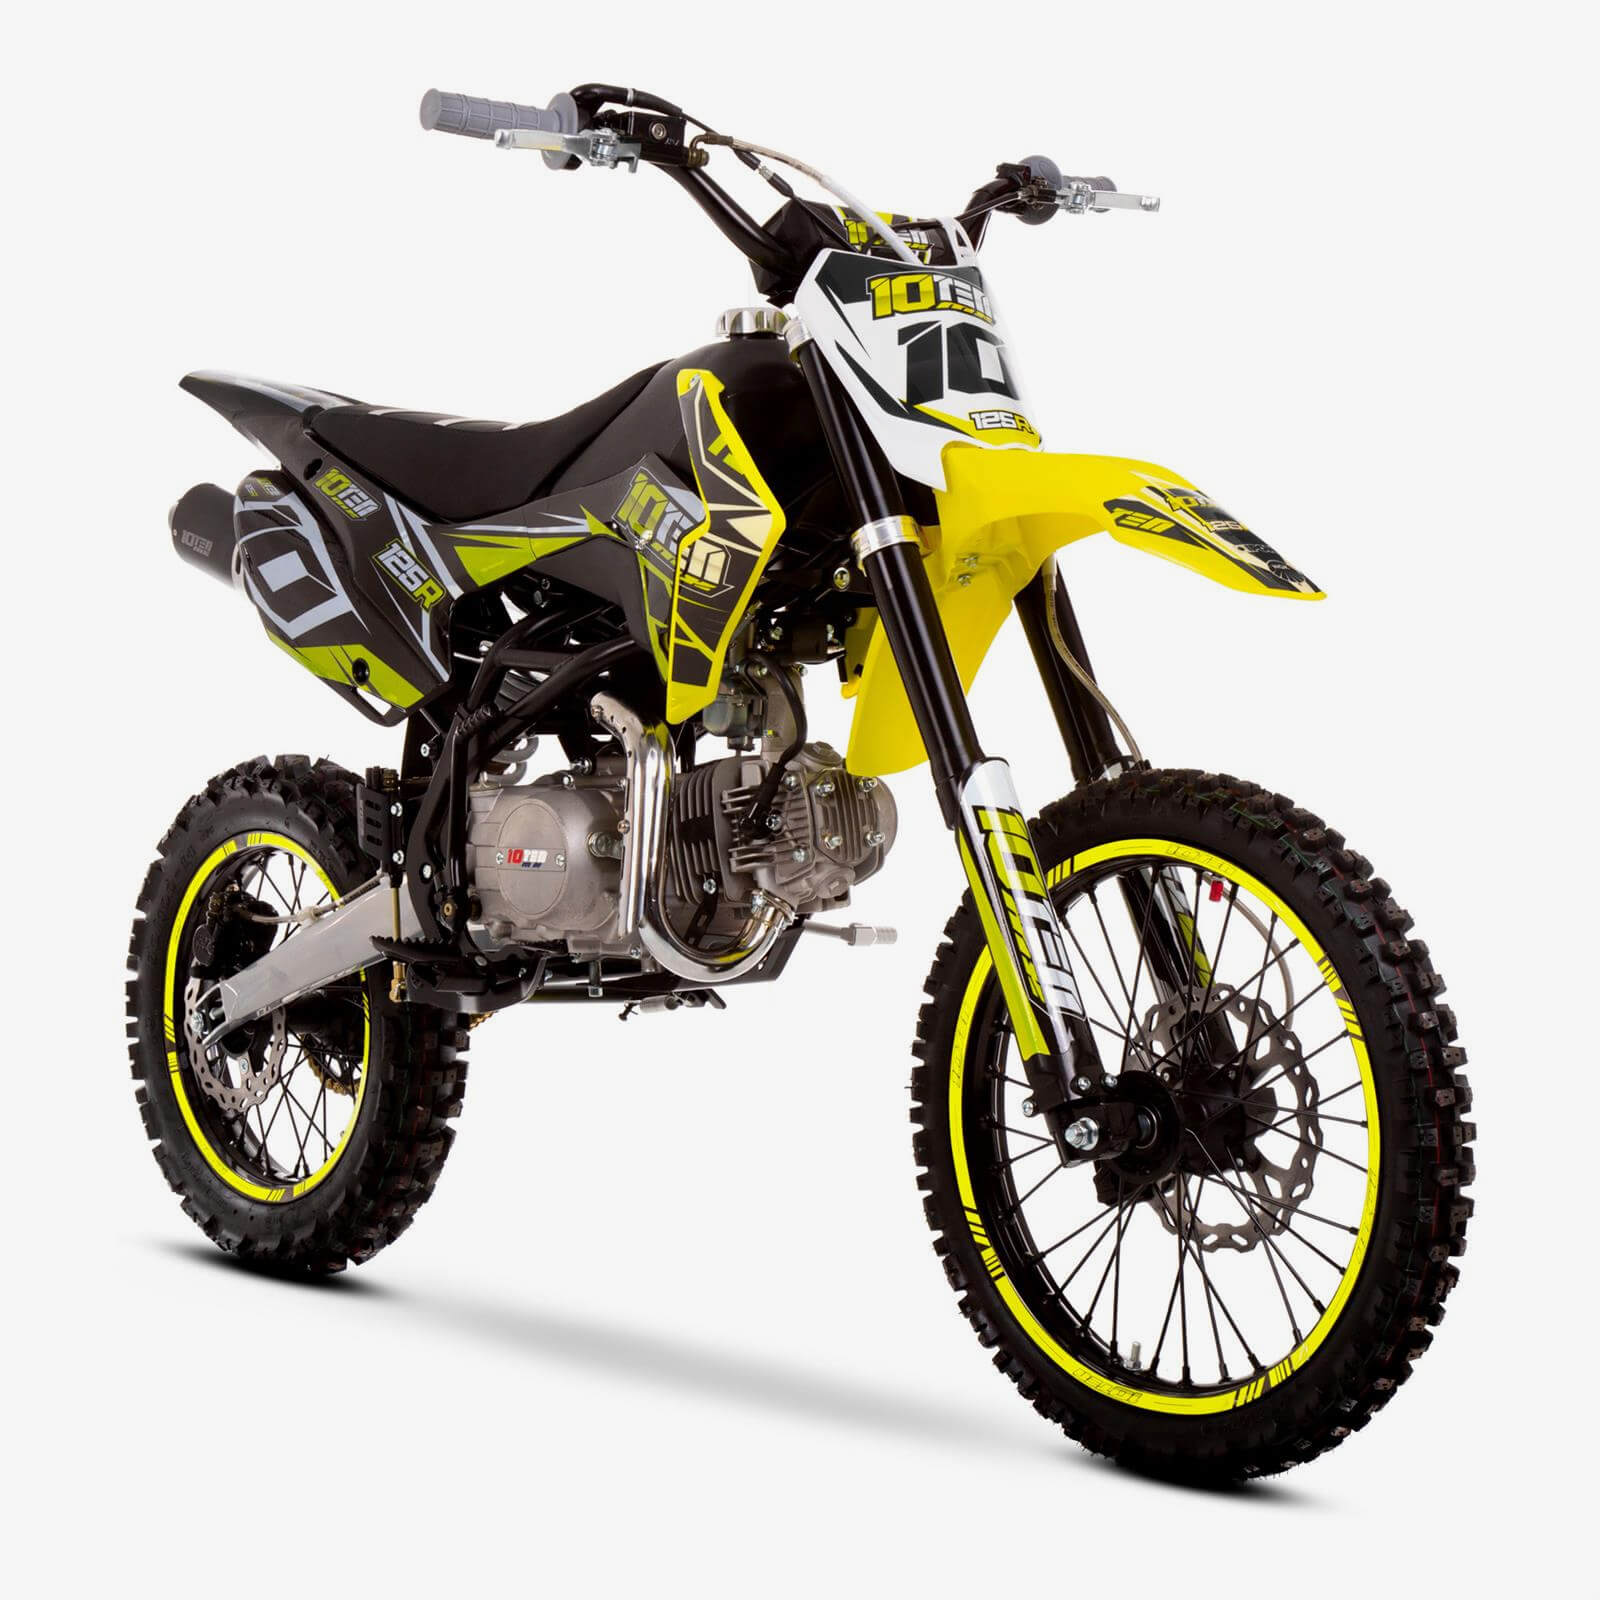 10TEn 10TEN 125R Dirt Bike